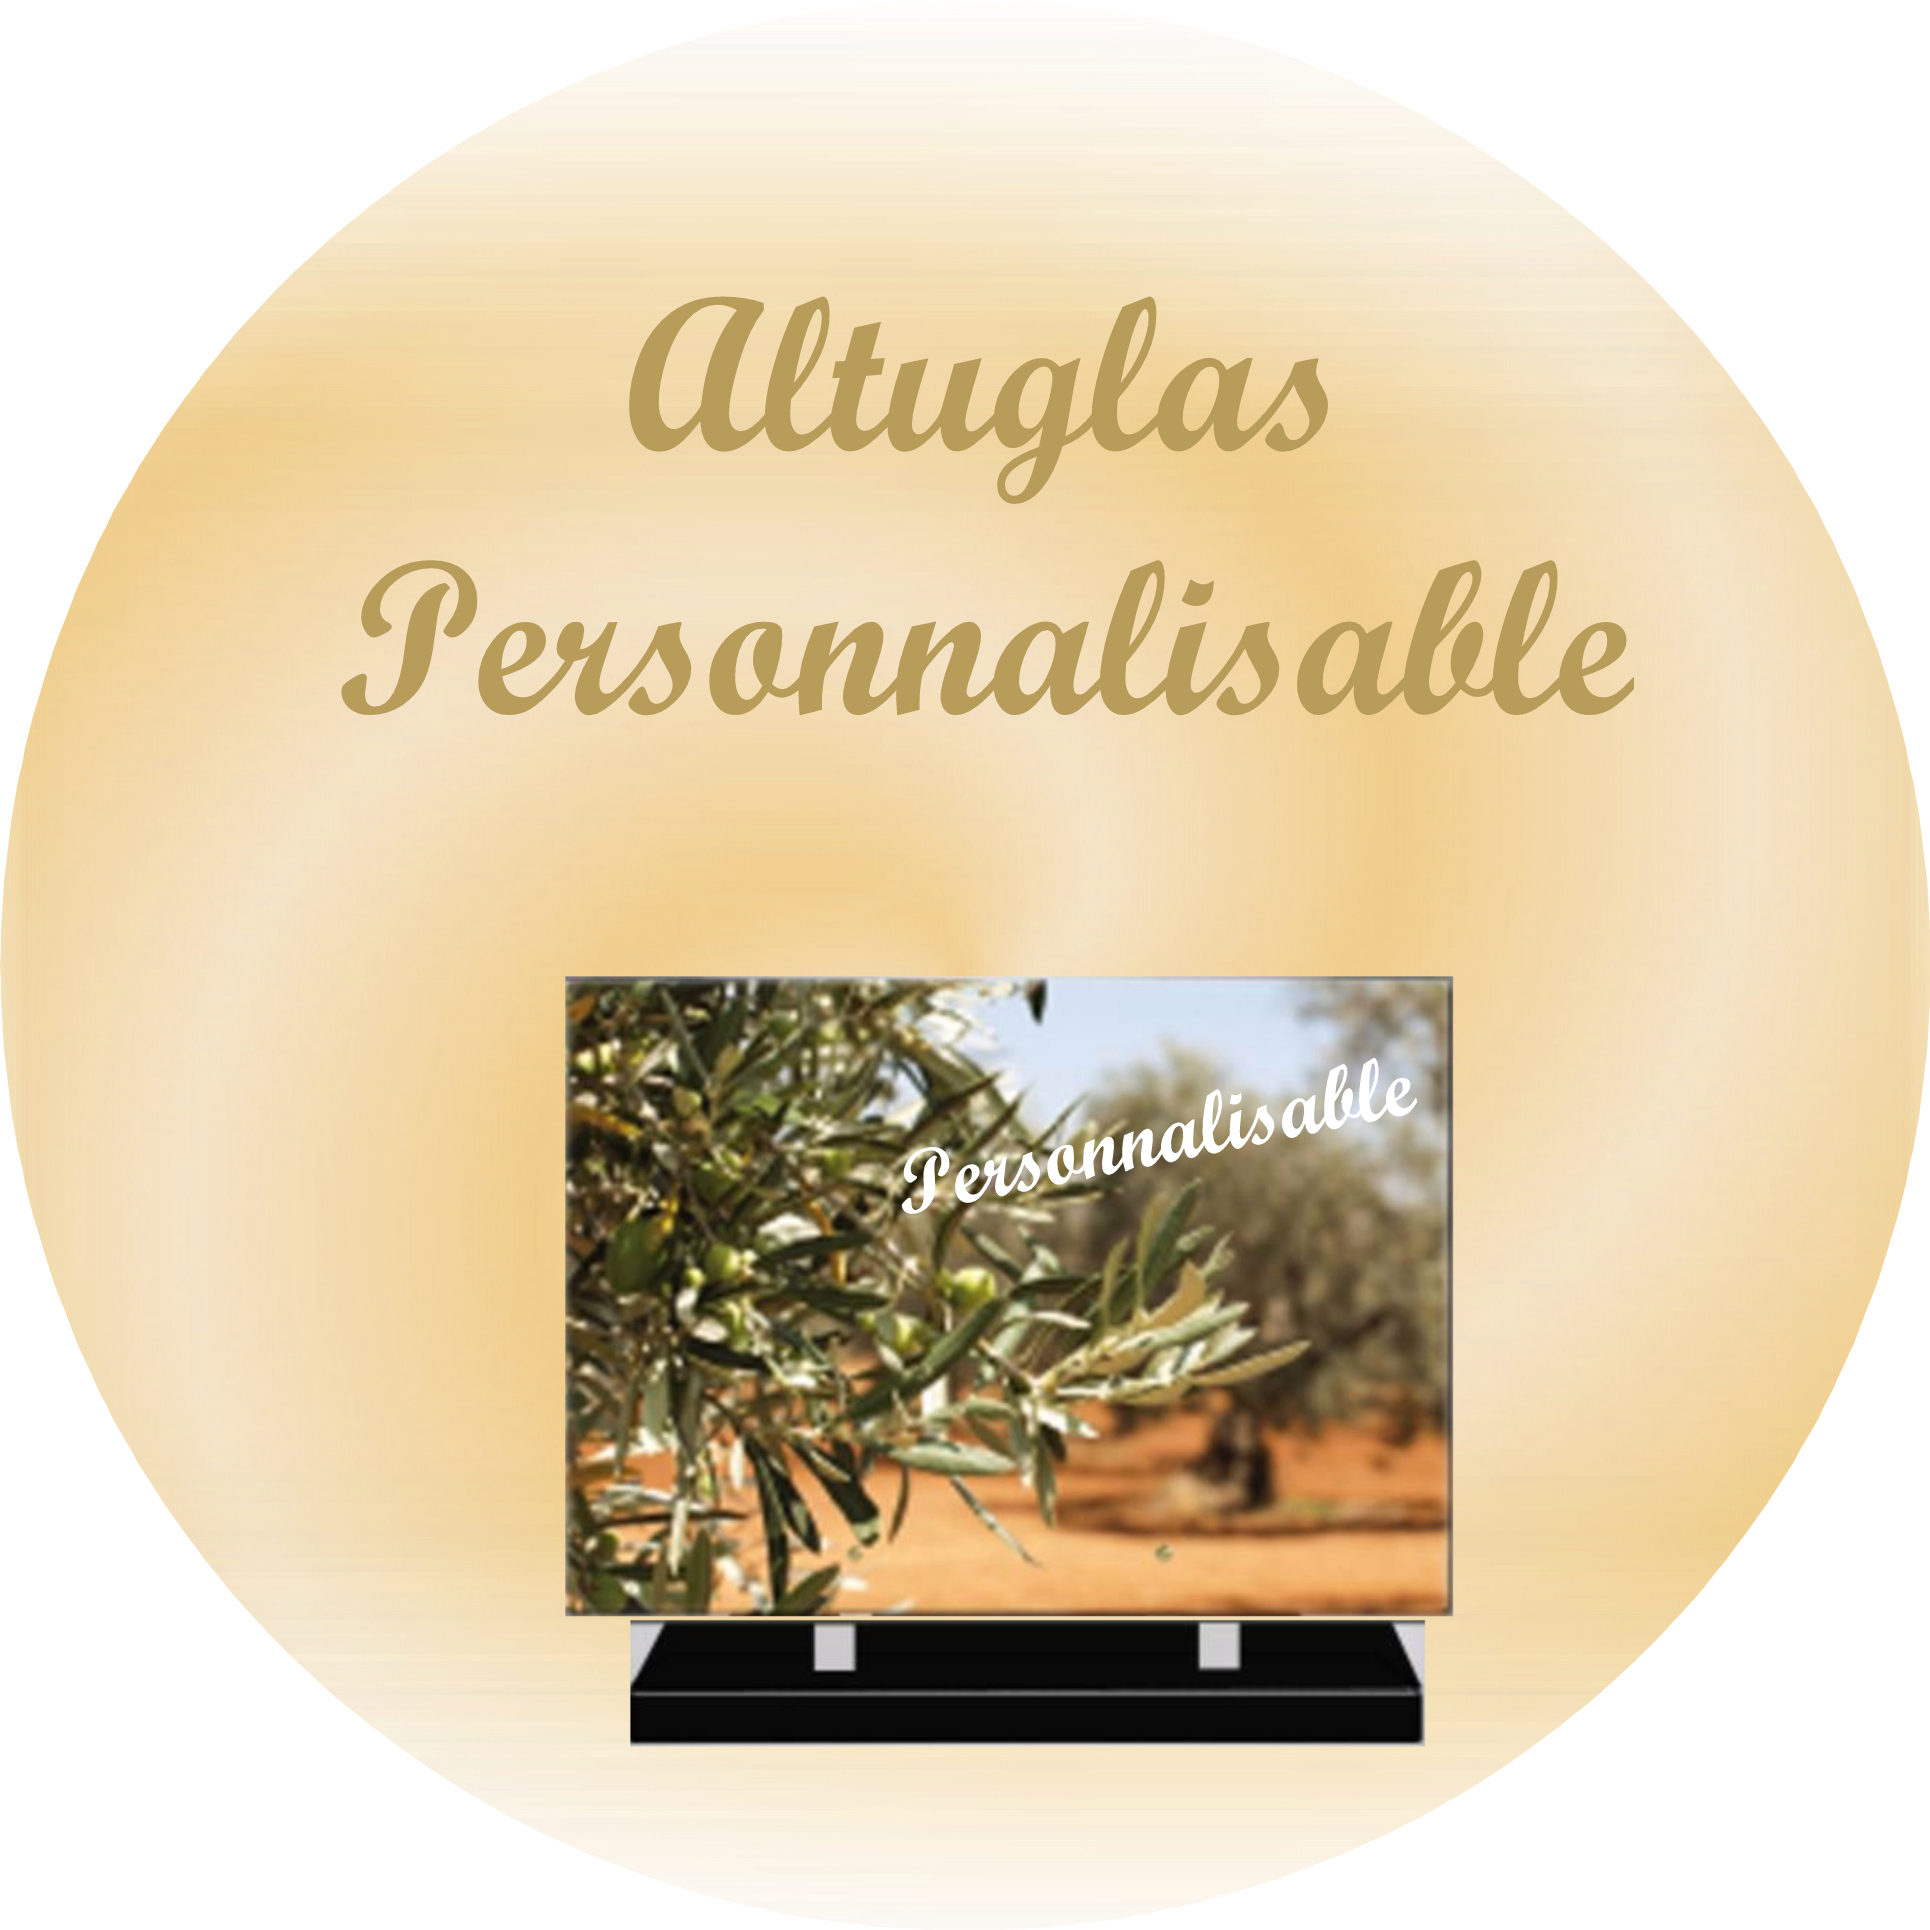 PLAQUES FUNERAIRES MODERNES PERSONNALISABLES RECTANGLE ALEMBON